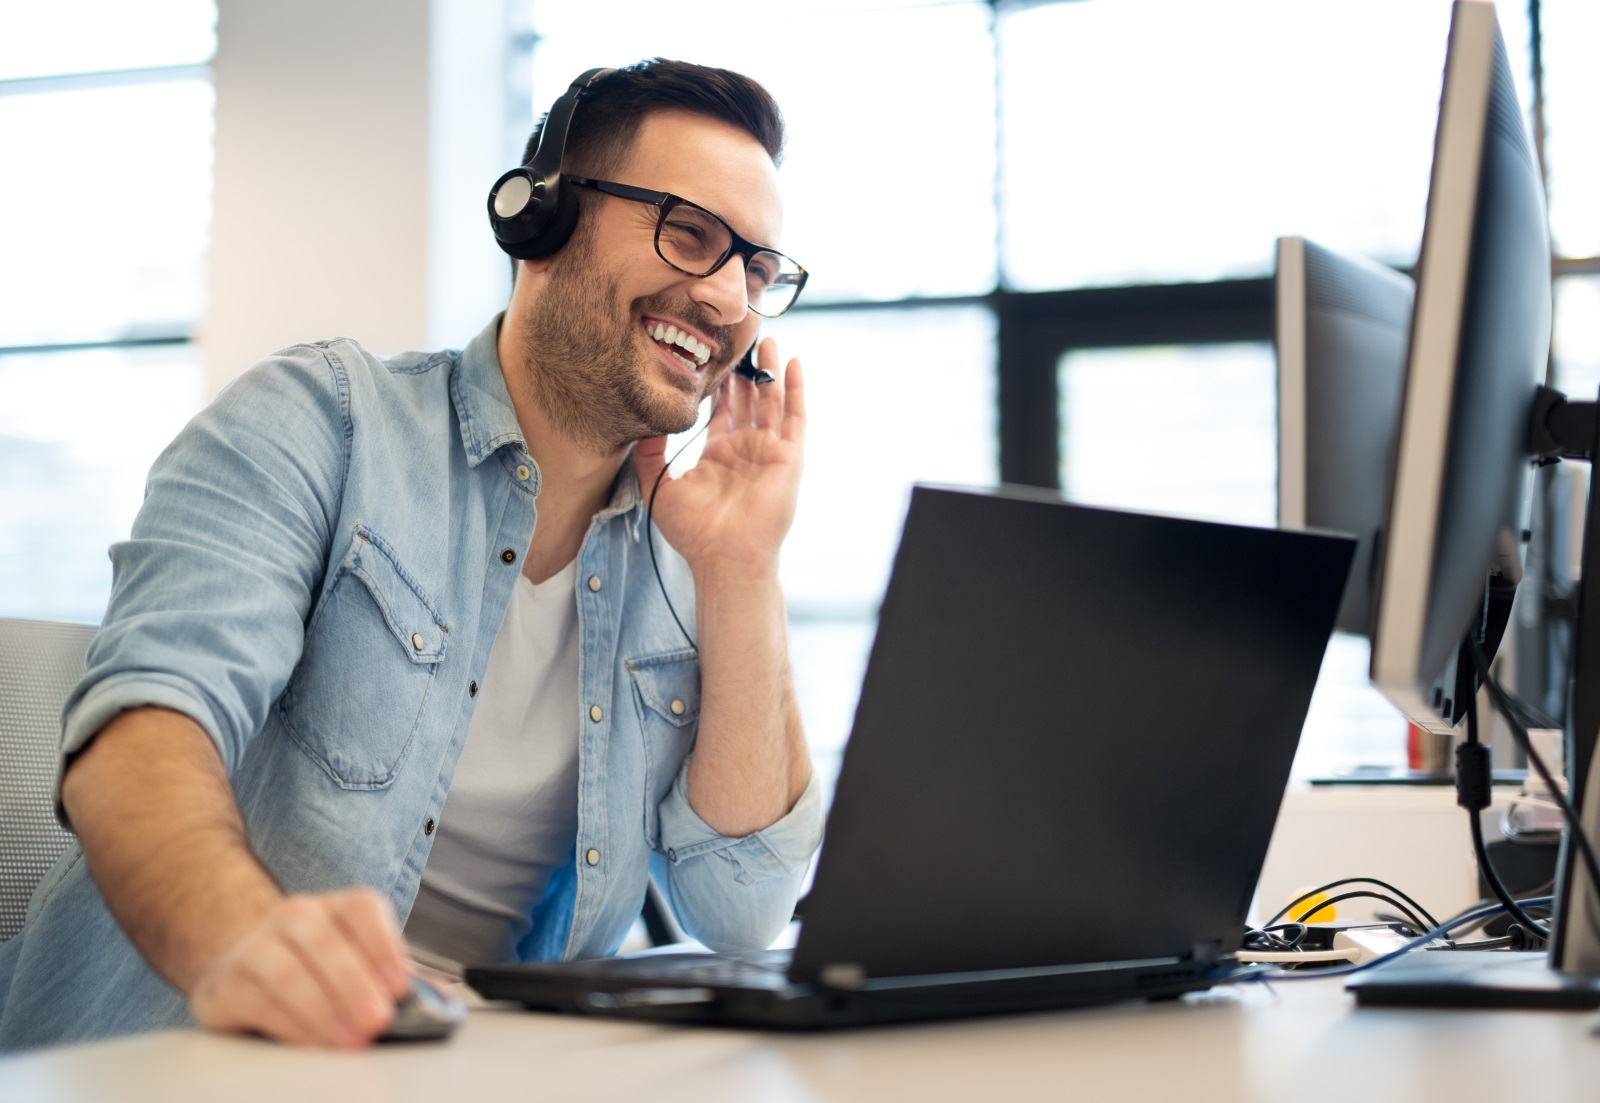 Contact Center Engagement: The Key to a Winning Customer Experience